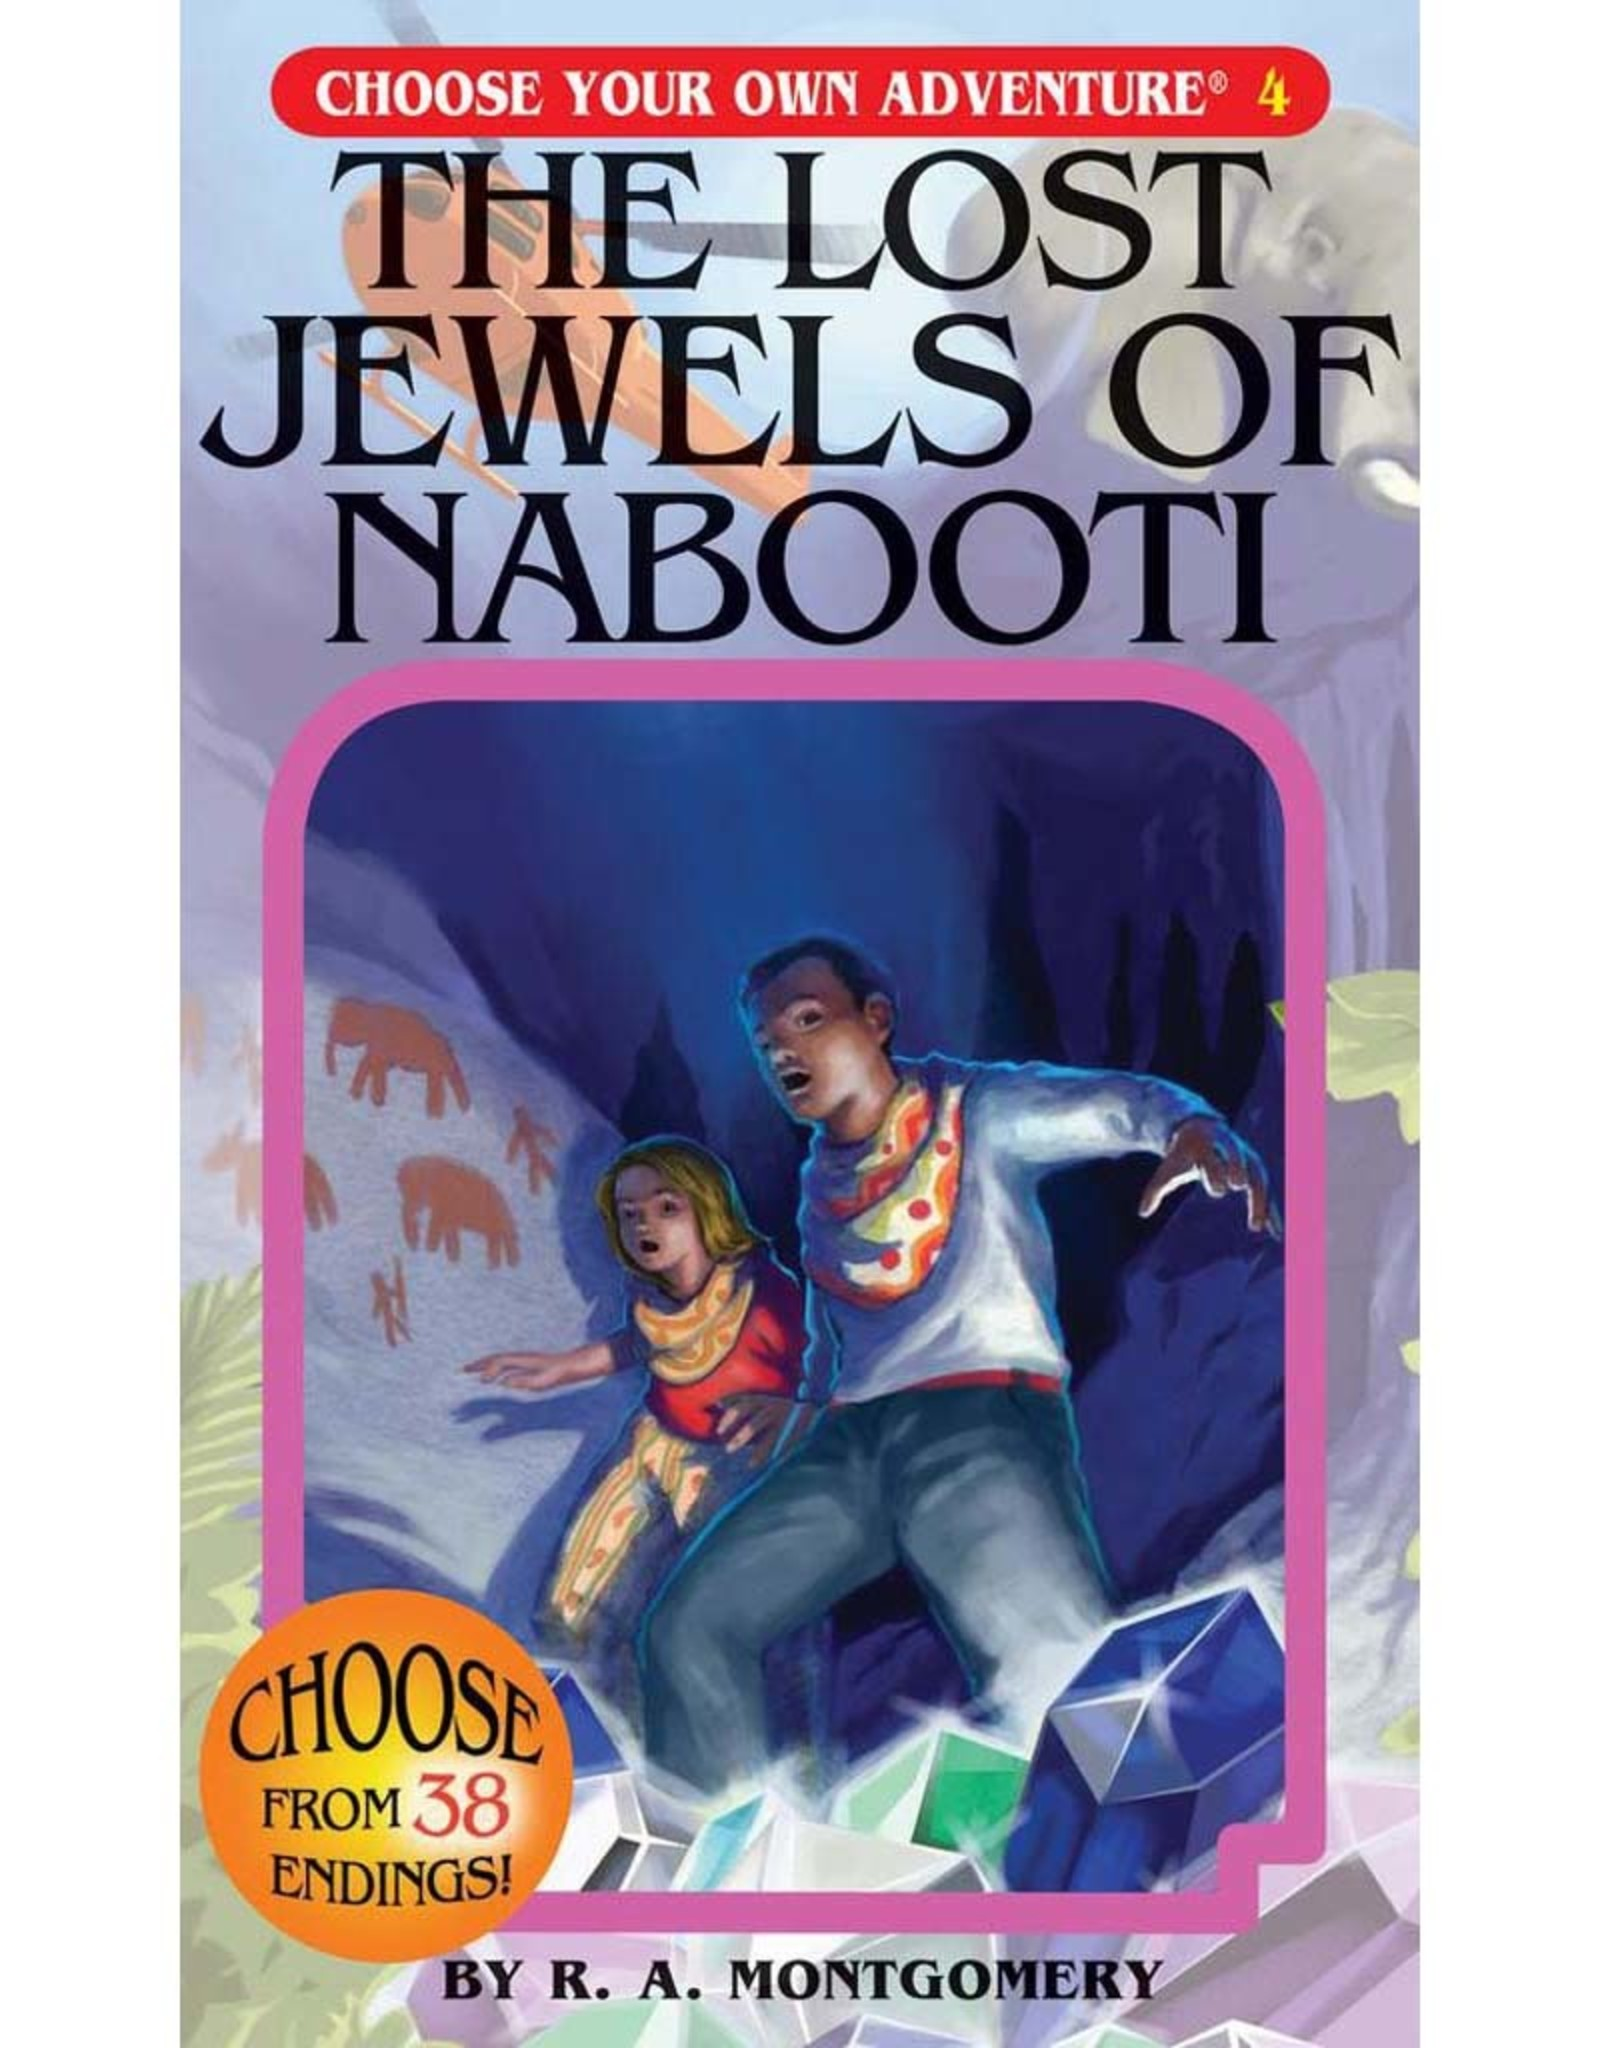 ChooseCo CYOA #4 The Lost Jewels of Nabooti